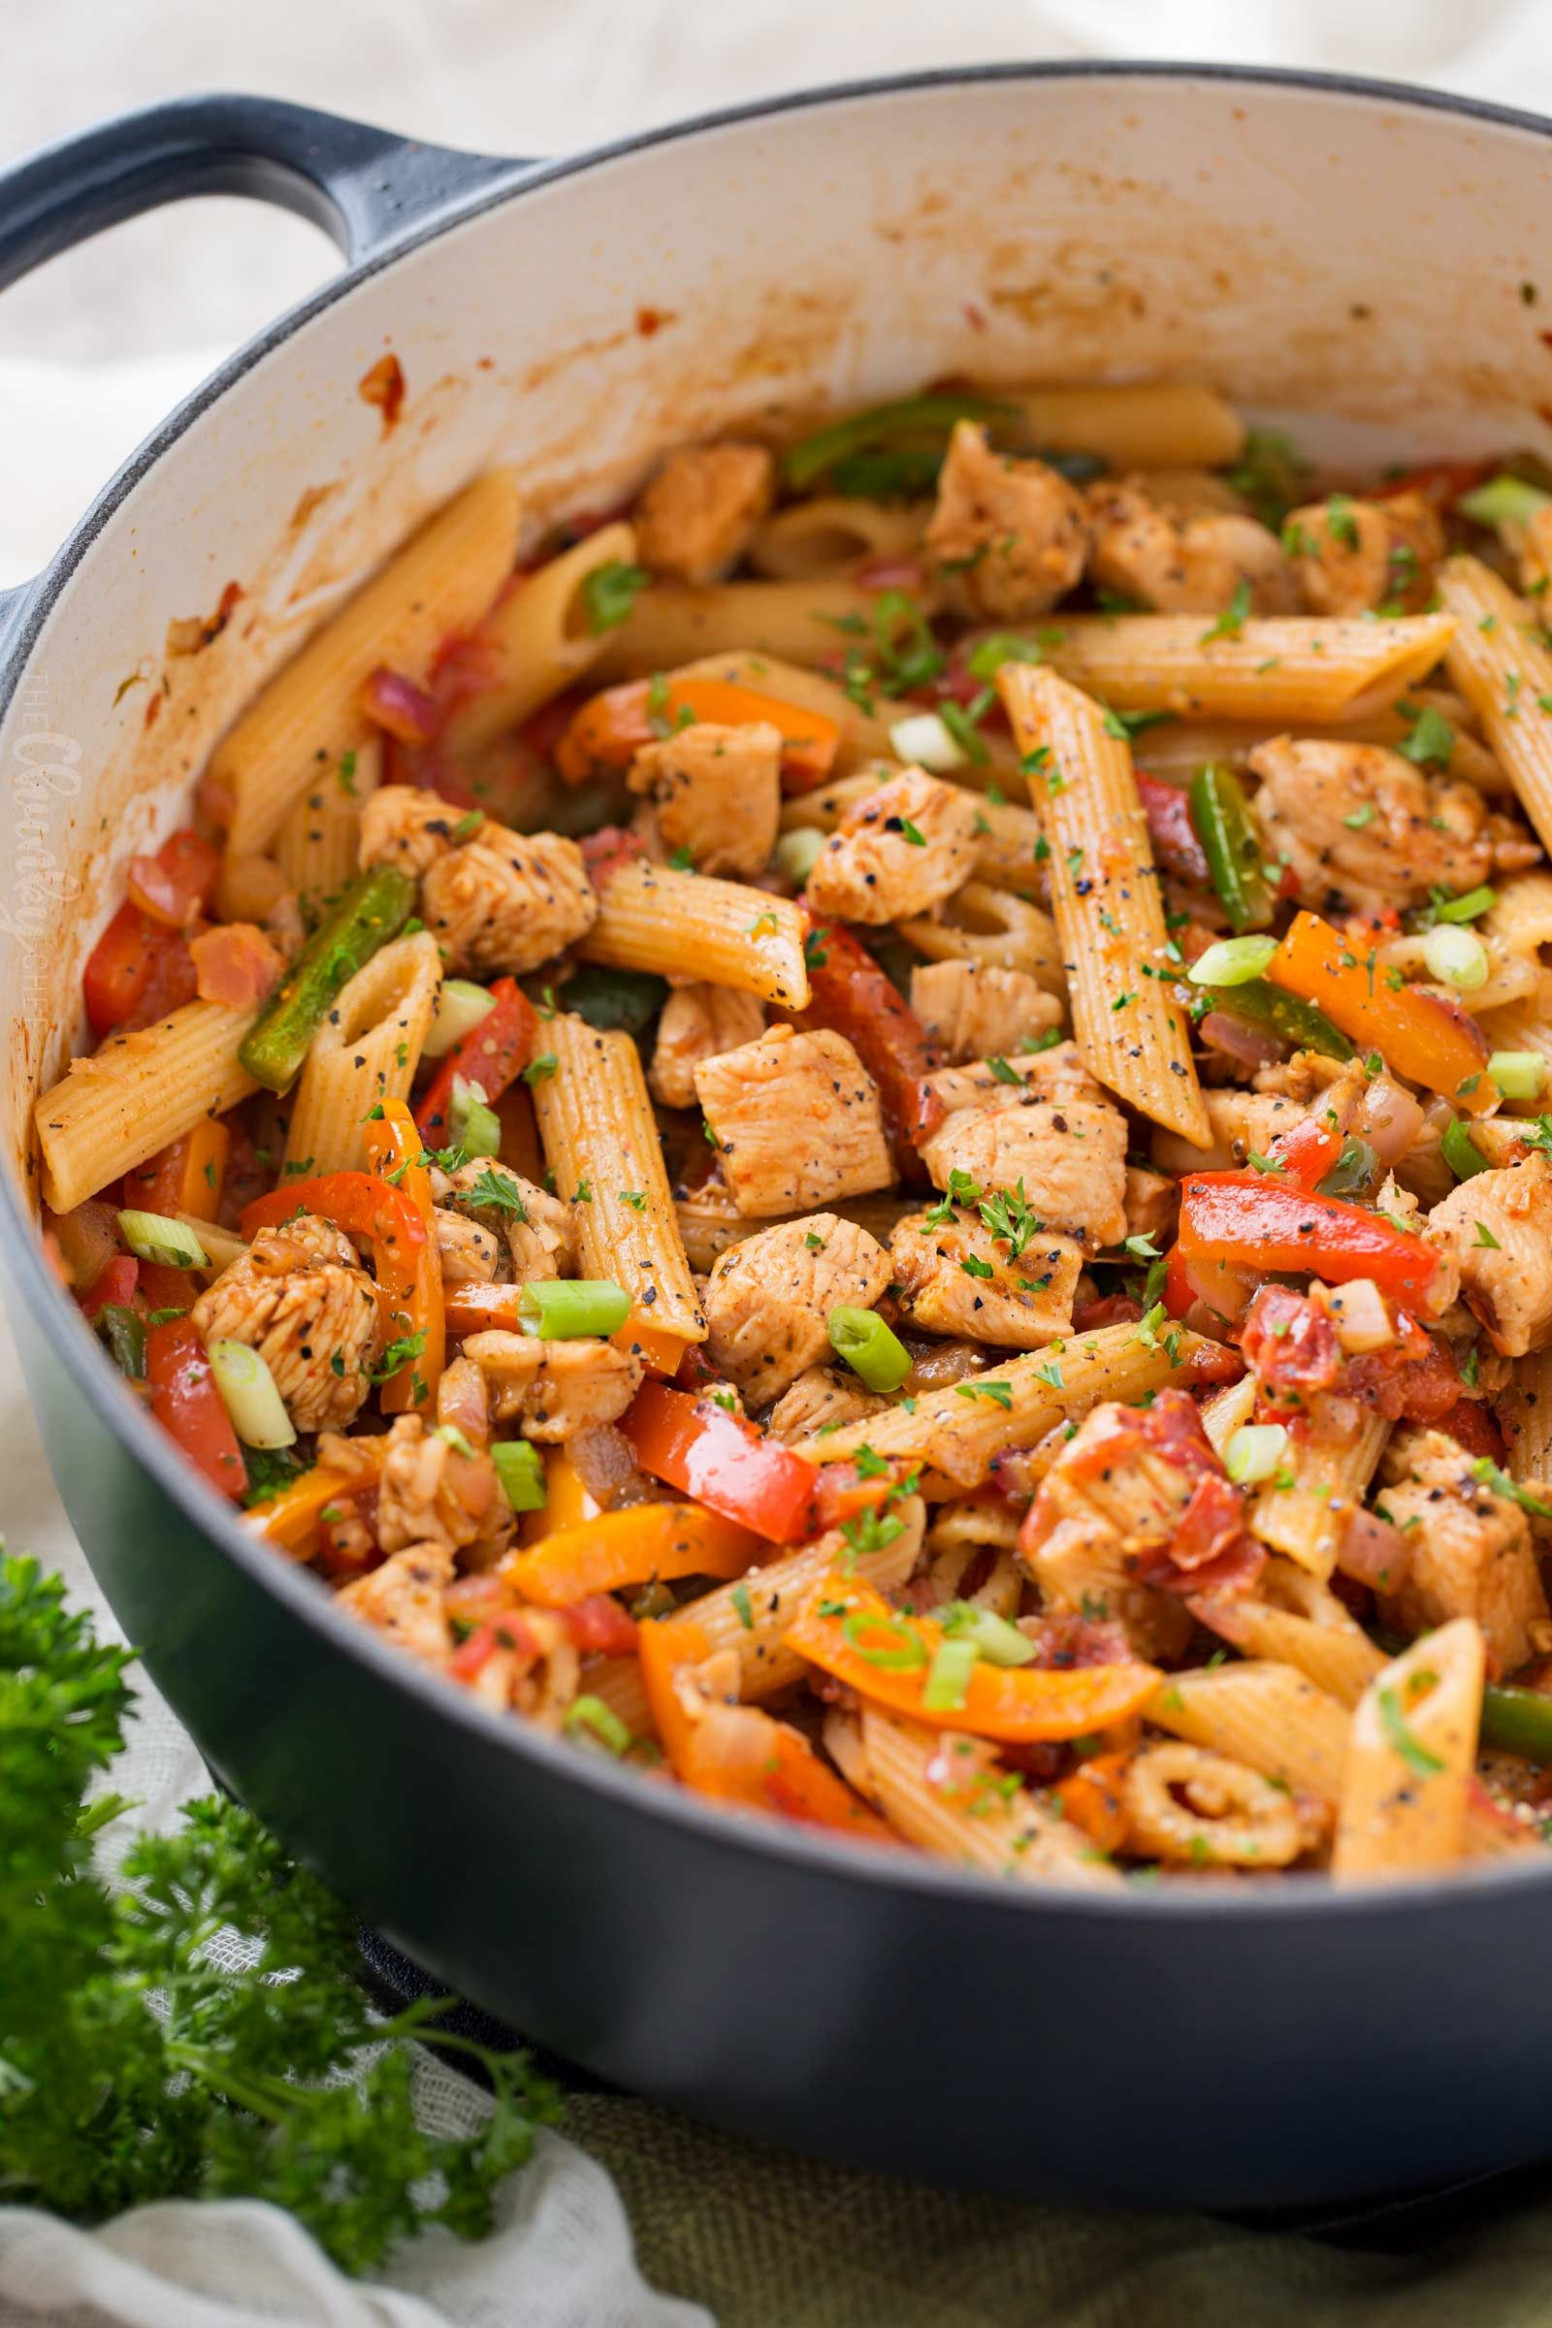 14 Best Quick, Easy Dinner Ideas - 14 Minute Dinner Recipes - food recipes quick and easy